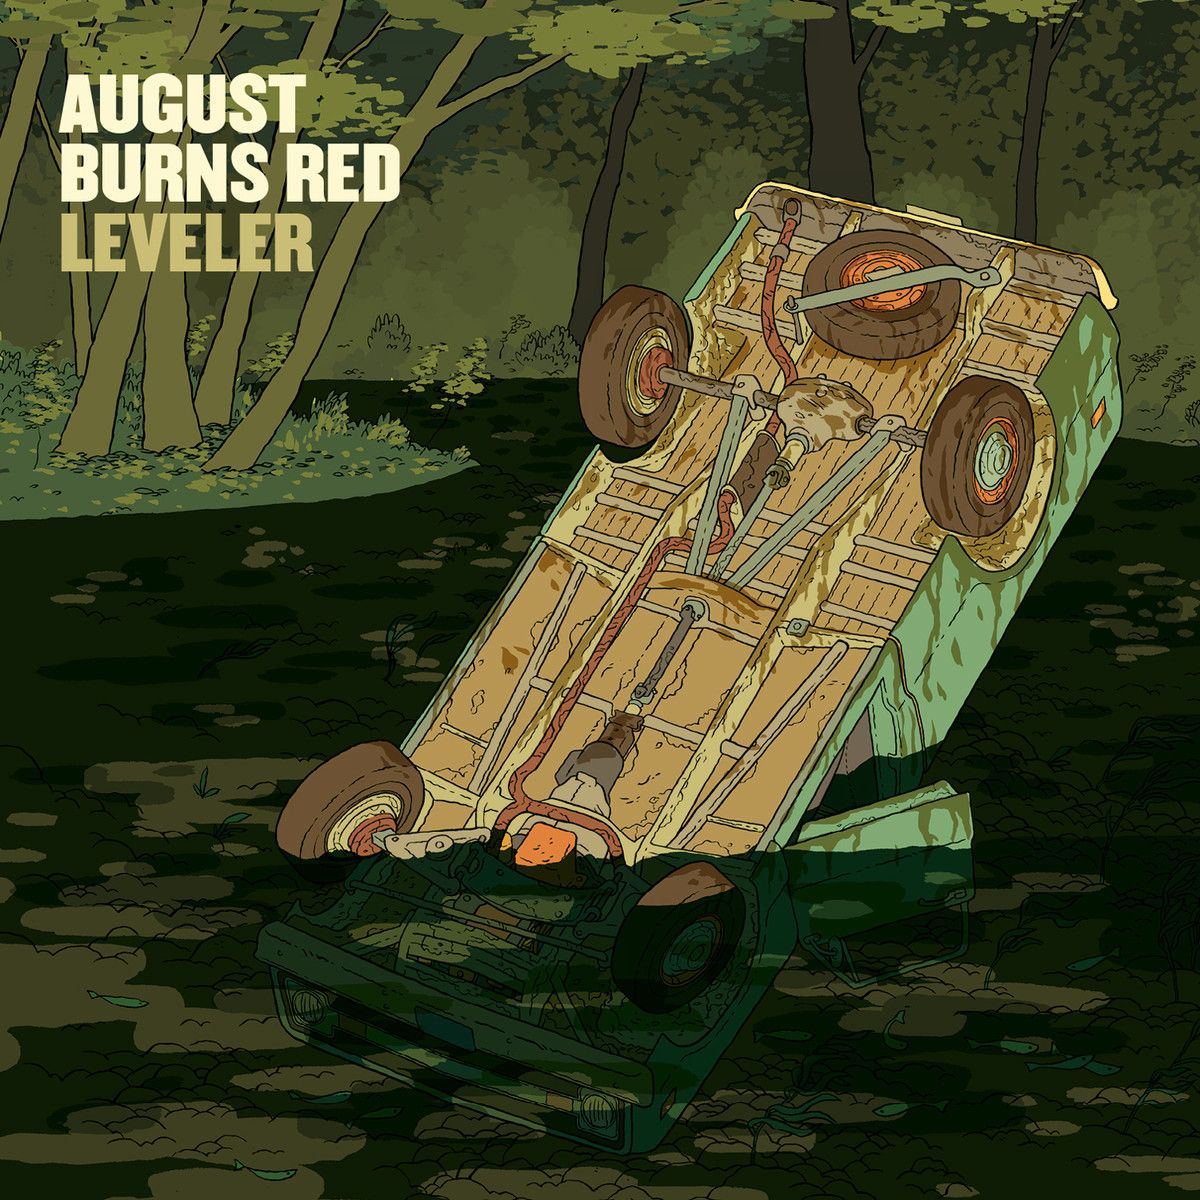 13 Metal Songs To Get You Pumped August burns red, Best